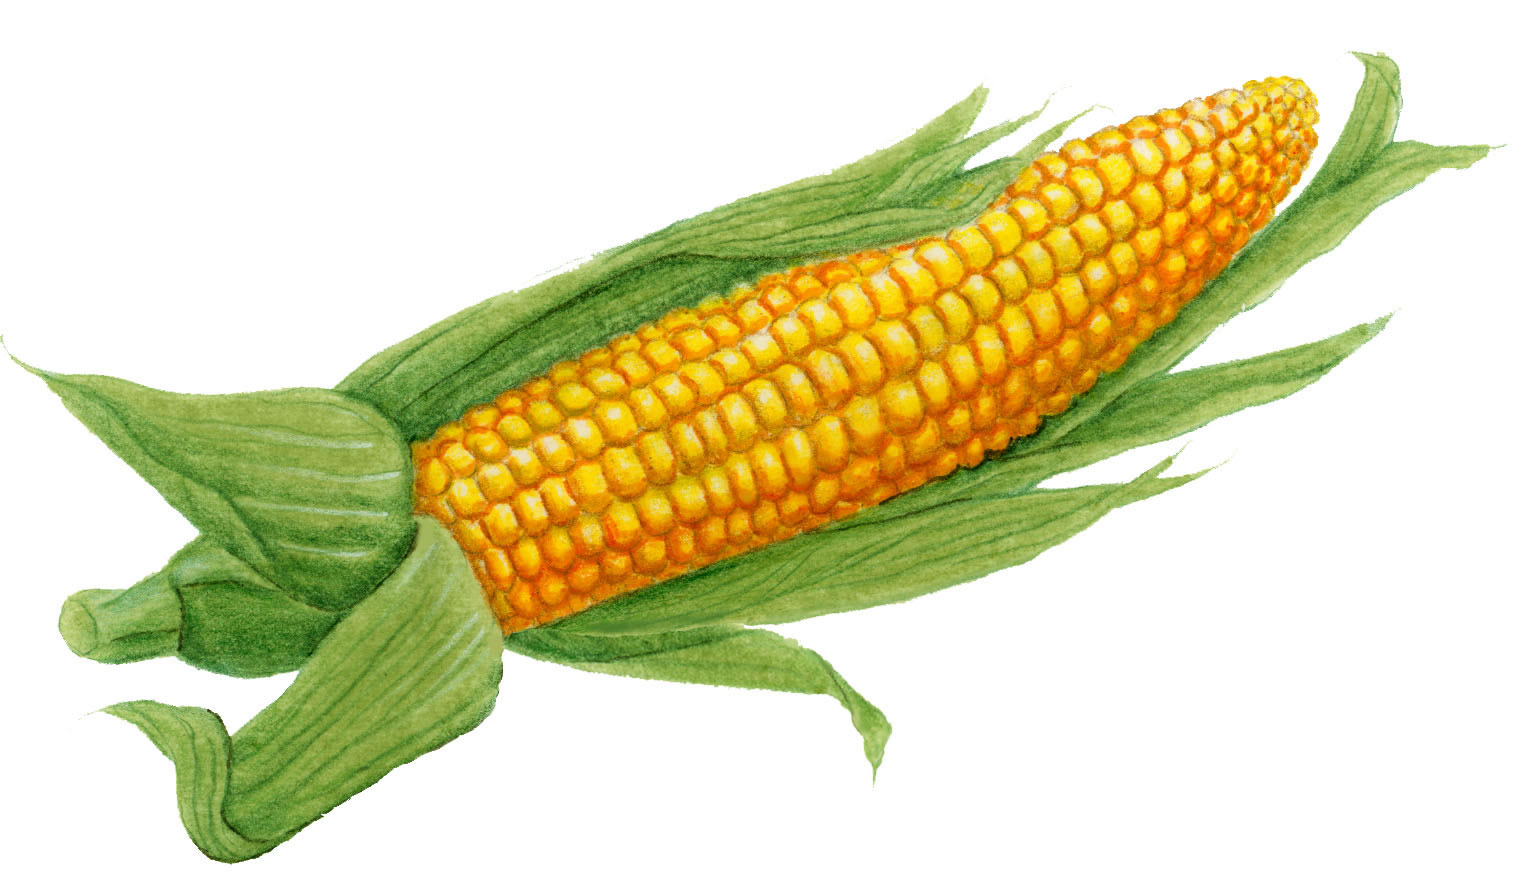 Ear of corn clipart 1 » Clipart Station.